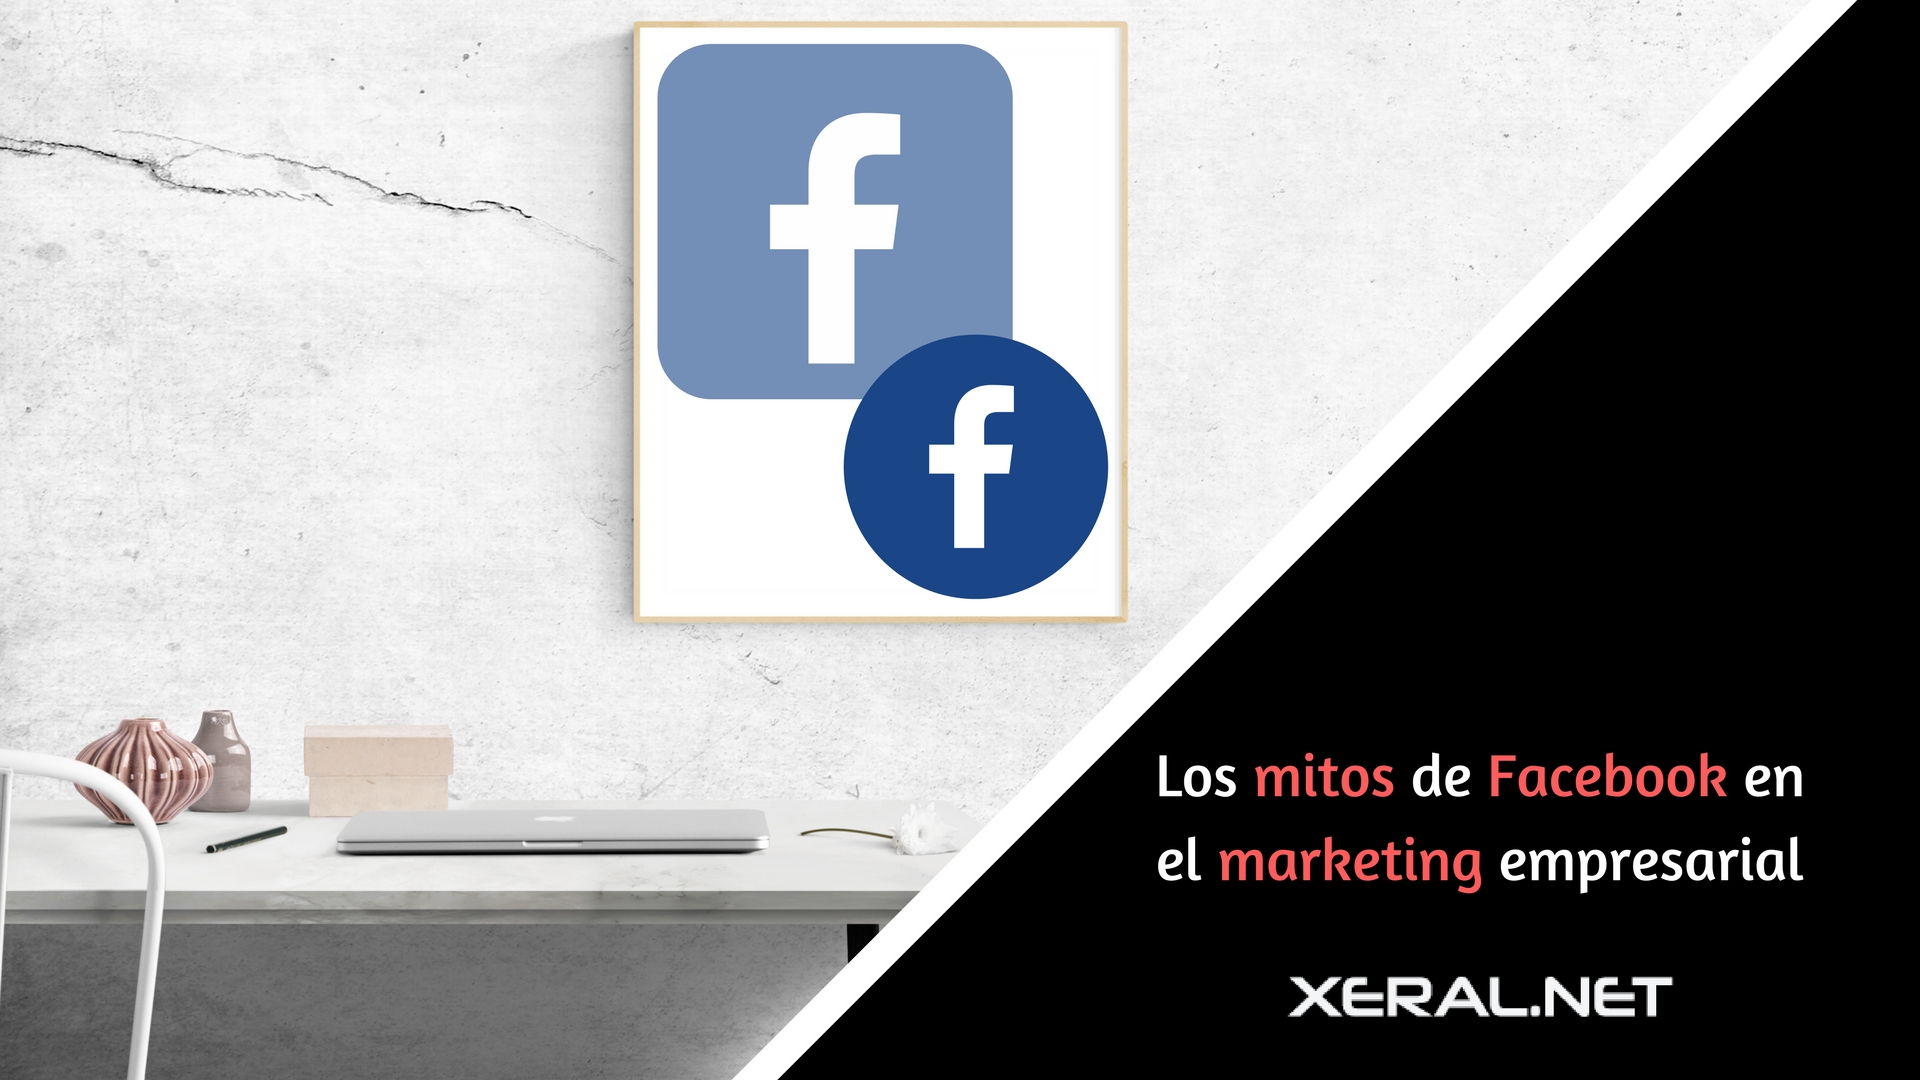 Mitos de Facebook en el marketing empresarial xeral.net social media